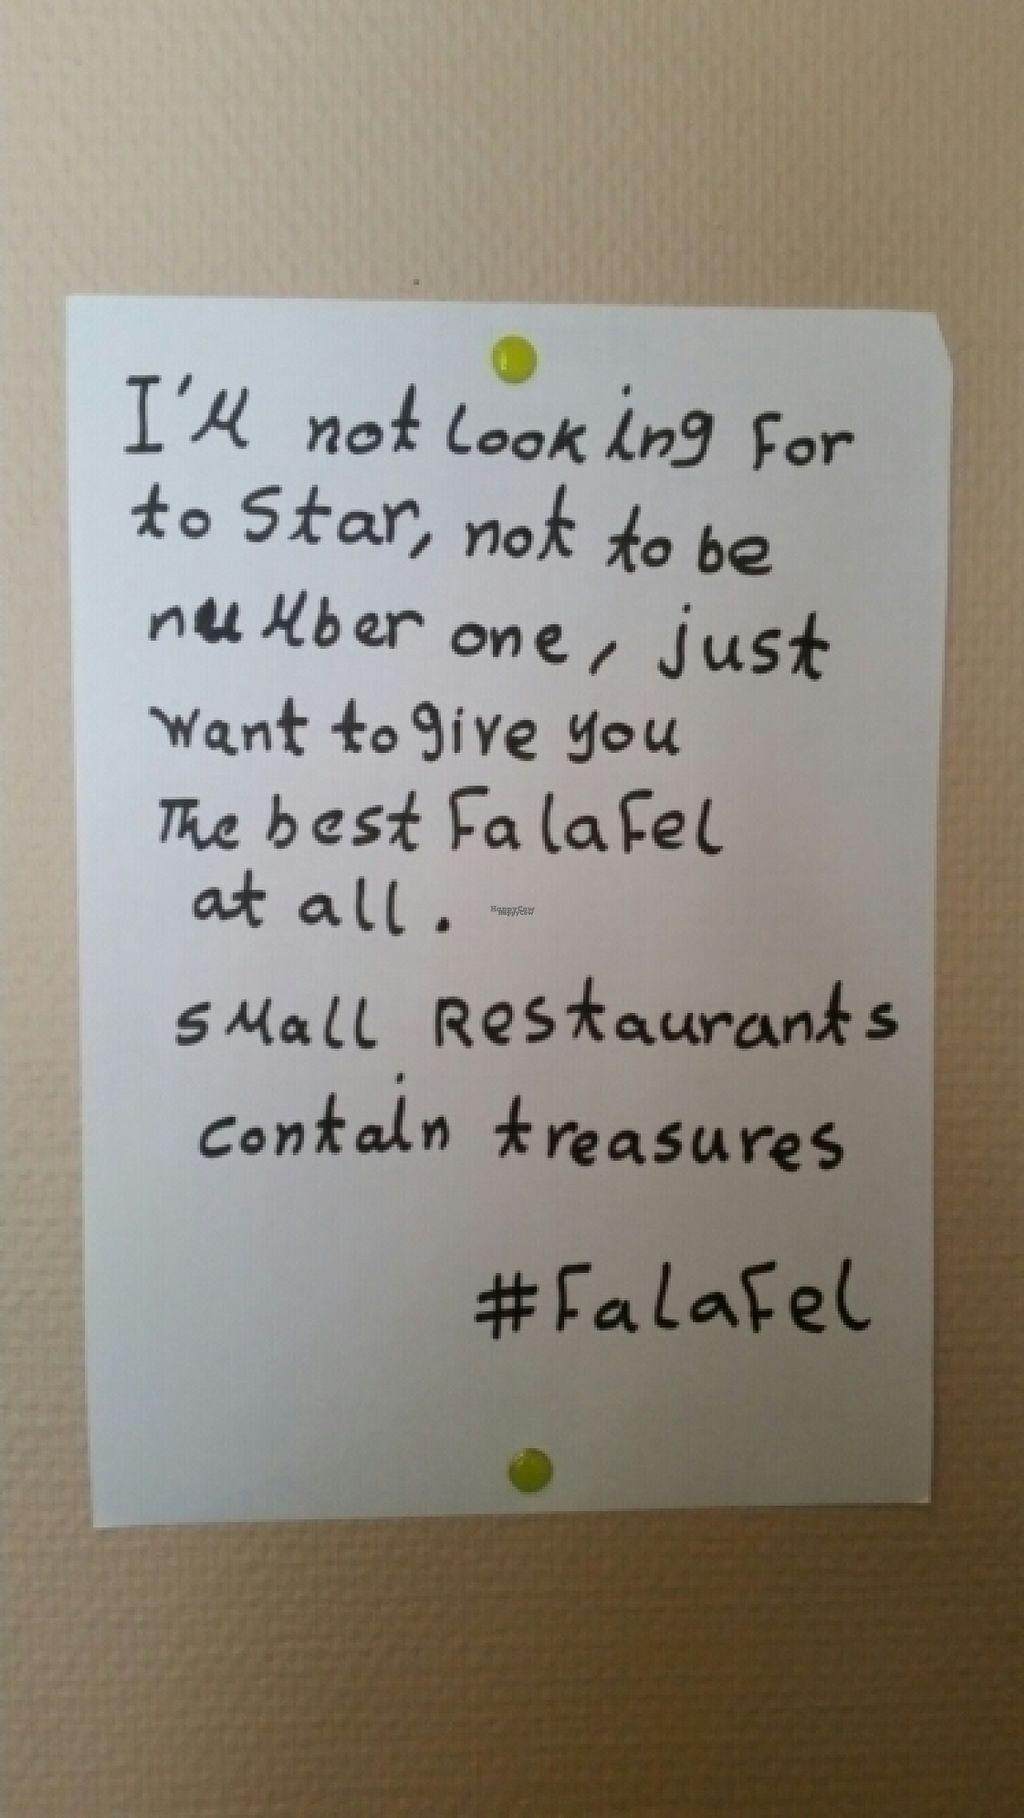 """Photo of Hashtag Falafel  by <a href=""""/members/profile/Lady.Tamina"""">Lady.Tamina</a> <br/>we could feel this motto <br/> August 7, 2016  - <a href='/contact/abuse/image/73160/166683'>Report</a>"""